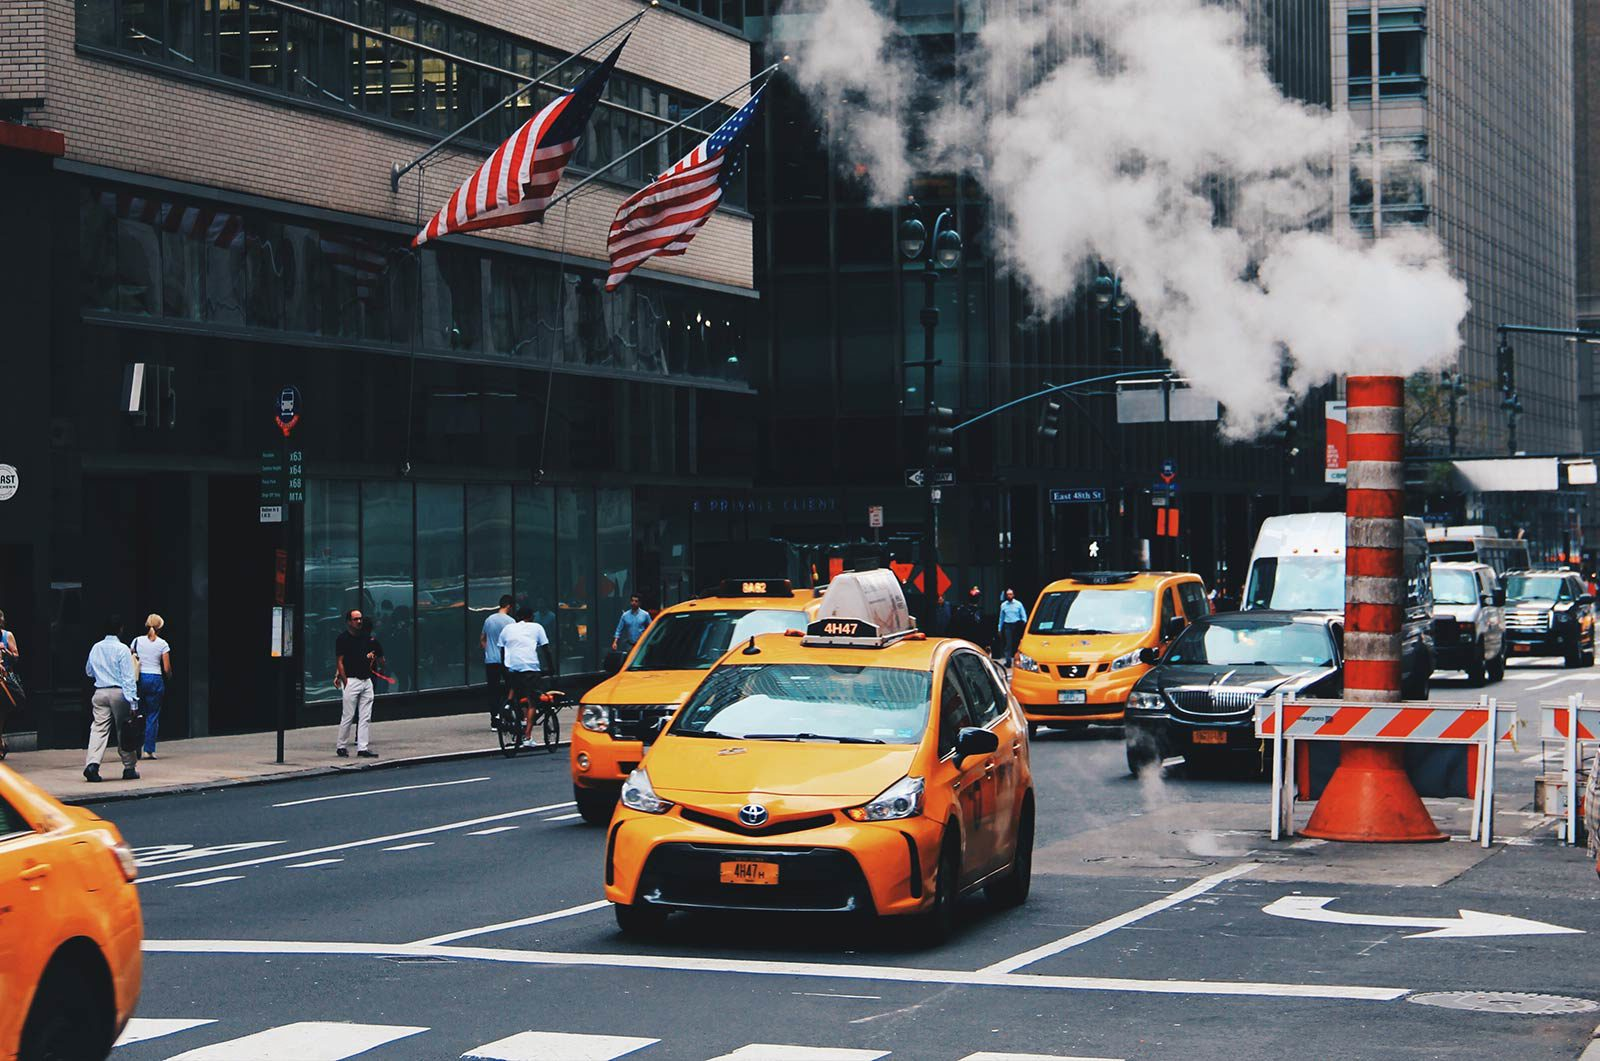 Taxis on street next to smoking construction and American flags hanging from buildings.